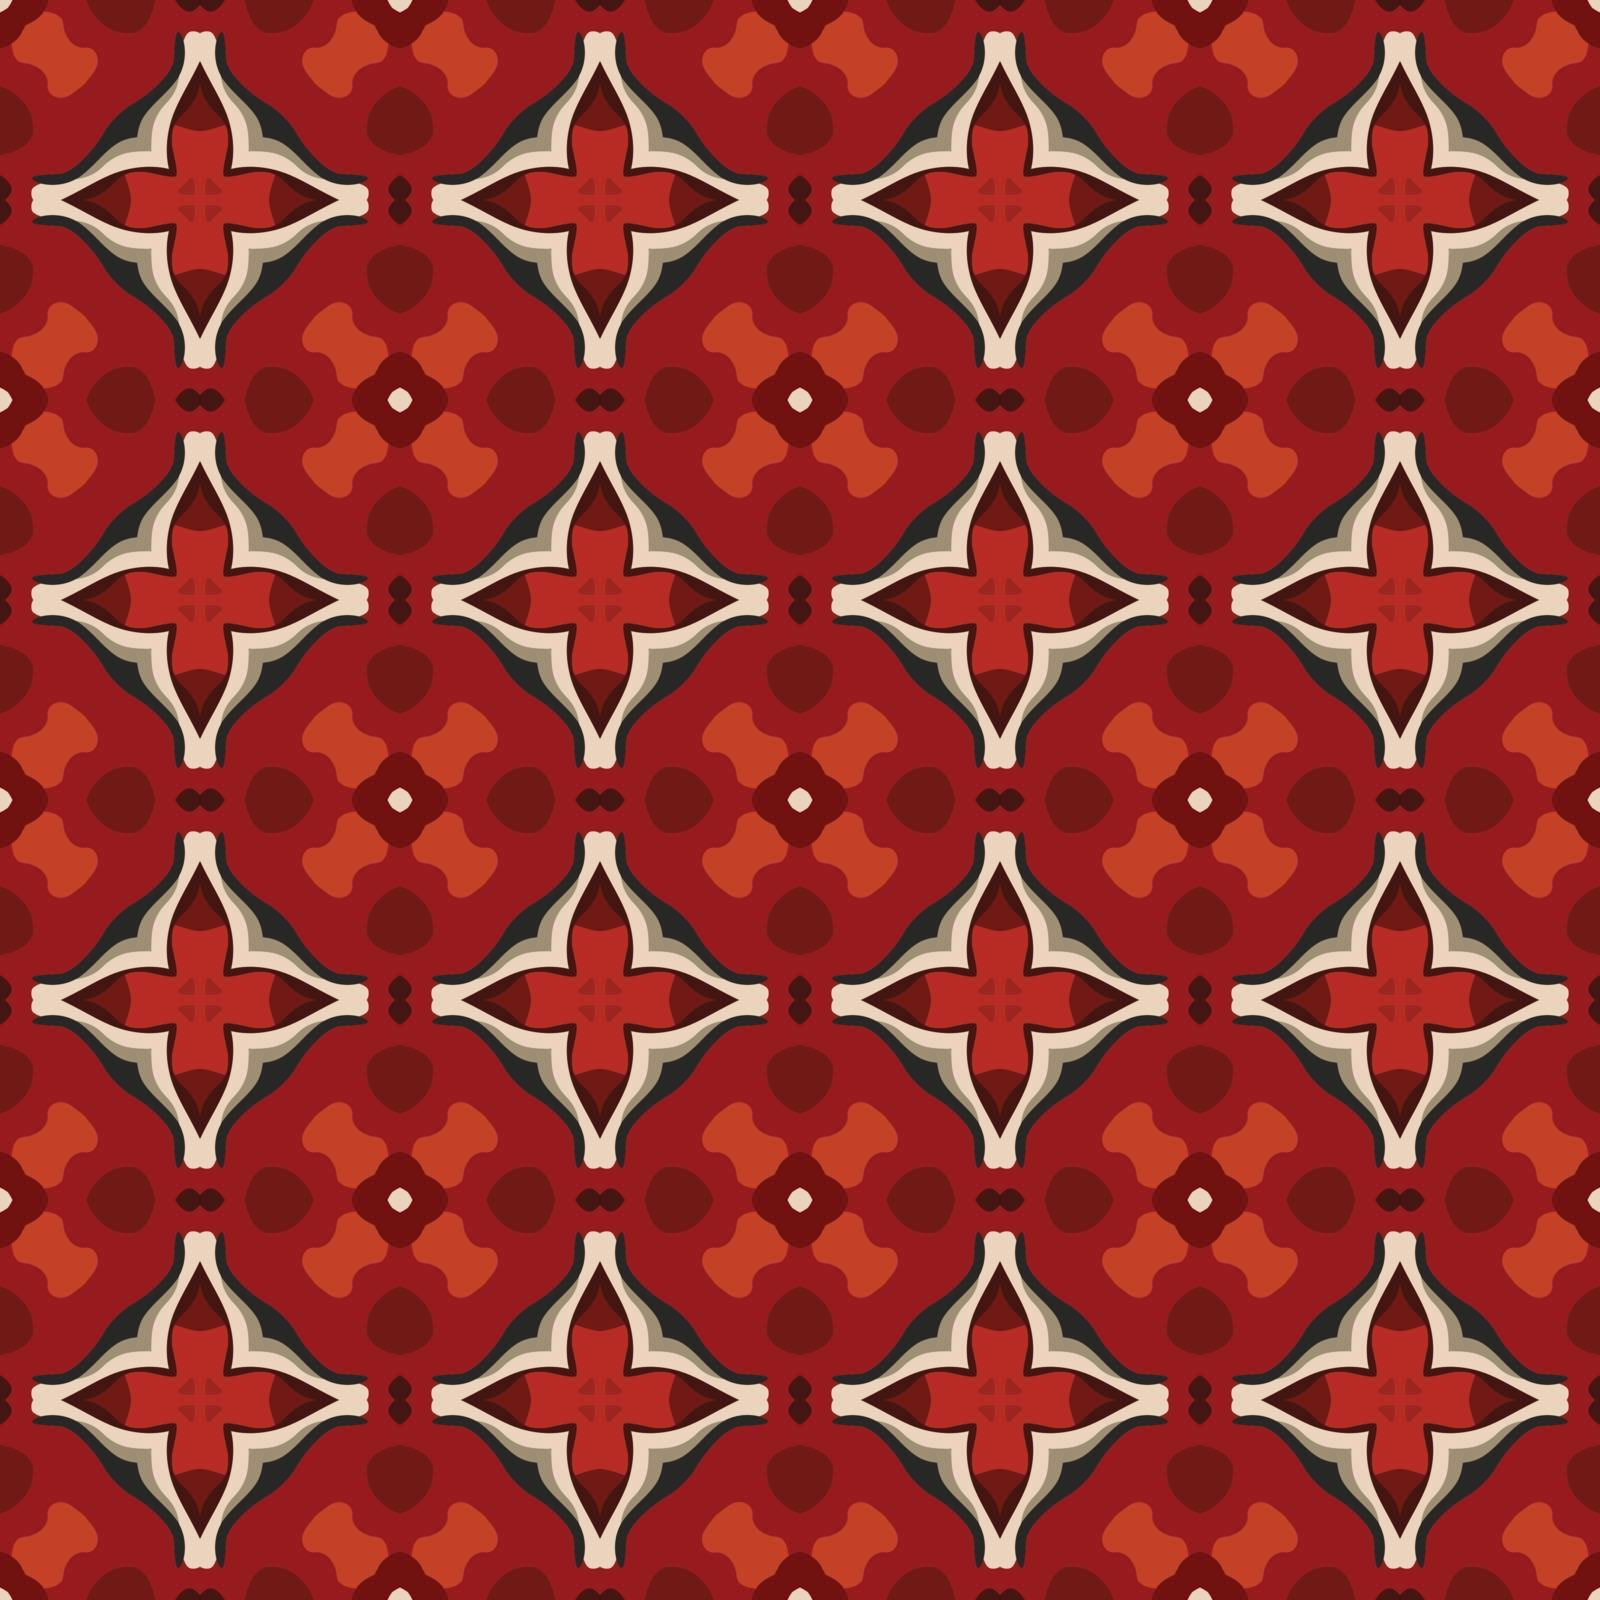 Seamless illustrated pattern made of abstract elements in beige, gray, red and black